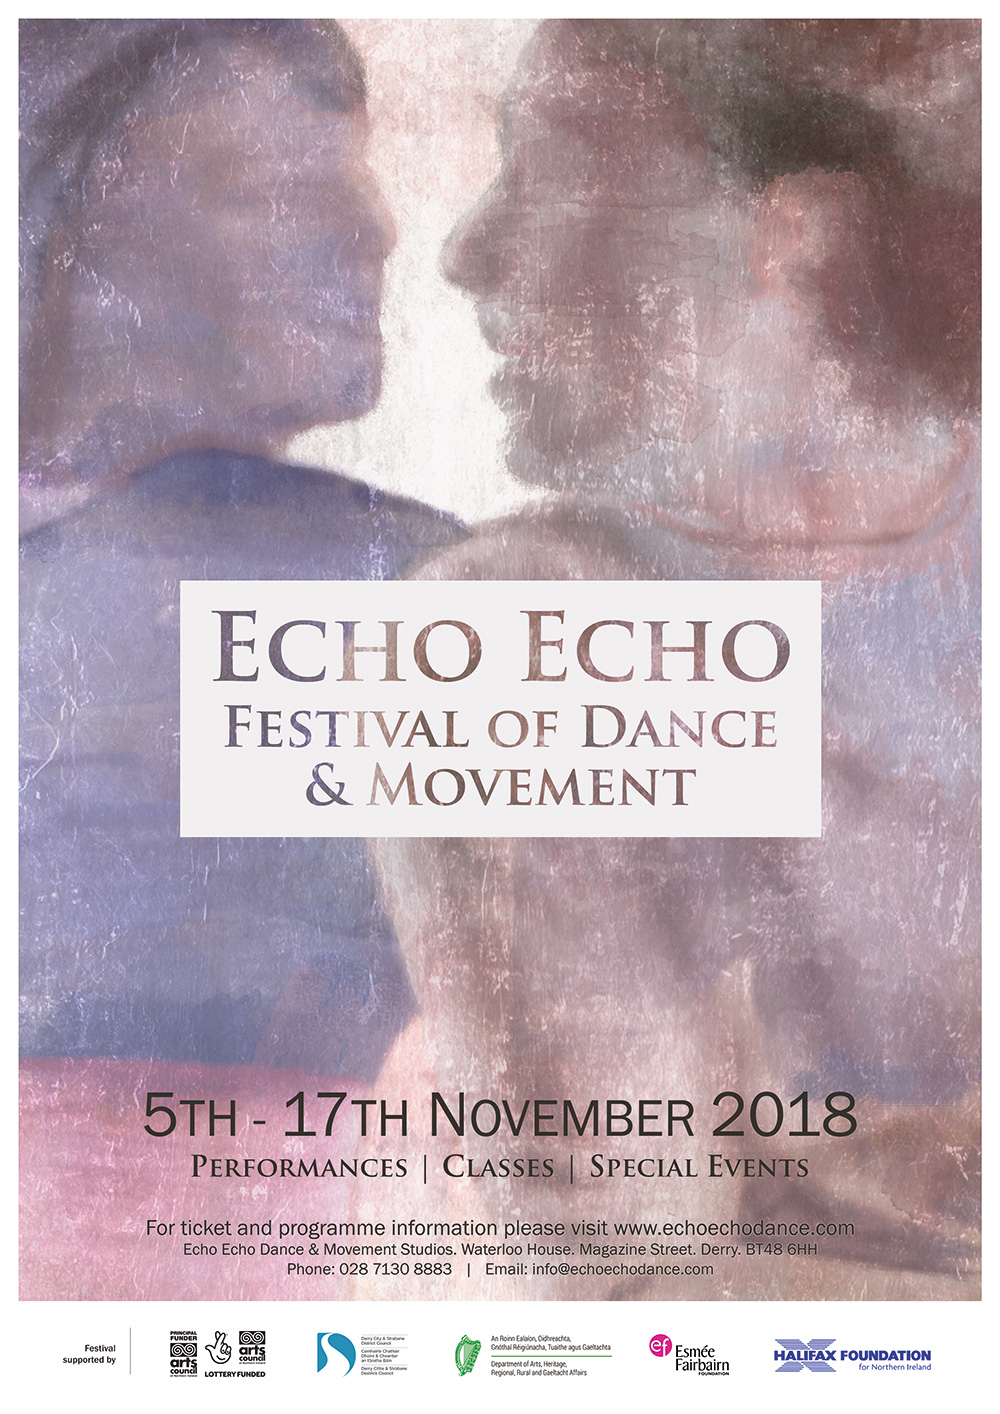 Echo Echo Festival 2018 artwork by zoocreative